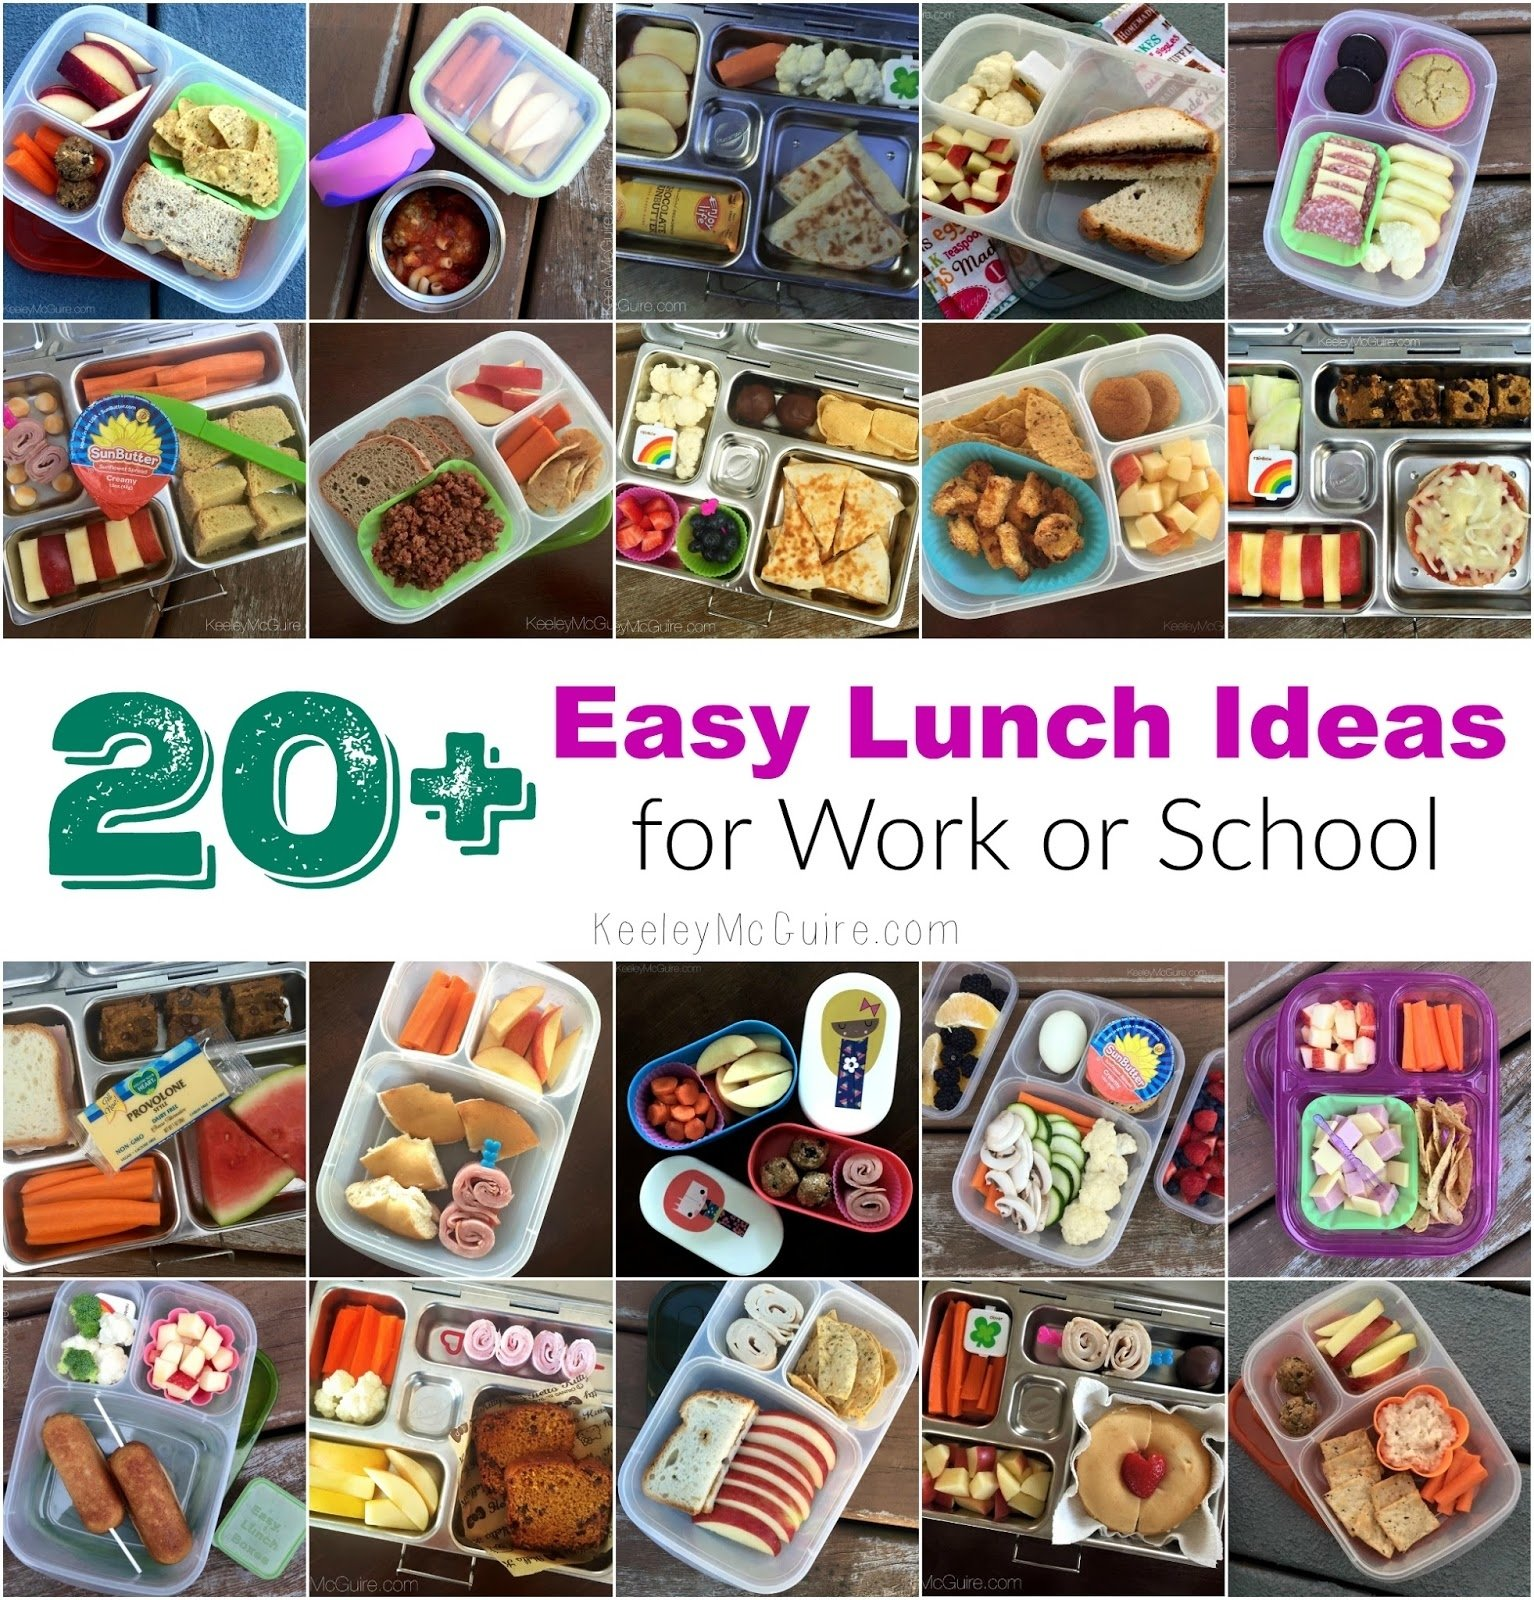 10 Perfect Quick And Easy Lunch Ideas For Work gluten free allergy friendly 20 easy lunch ideas for work or school 1 2020